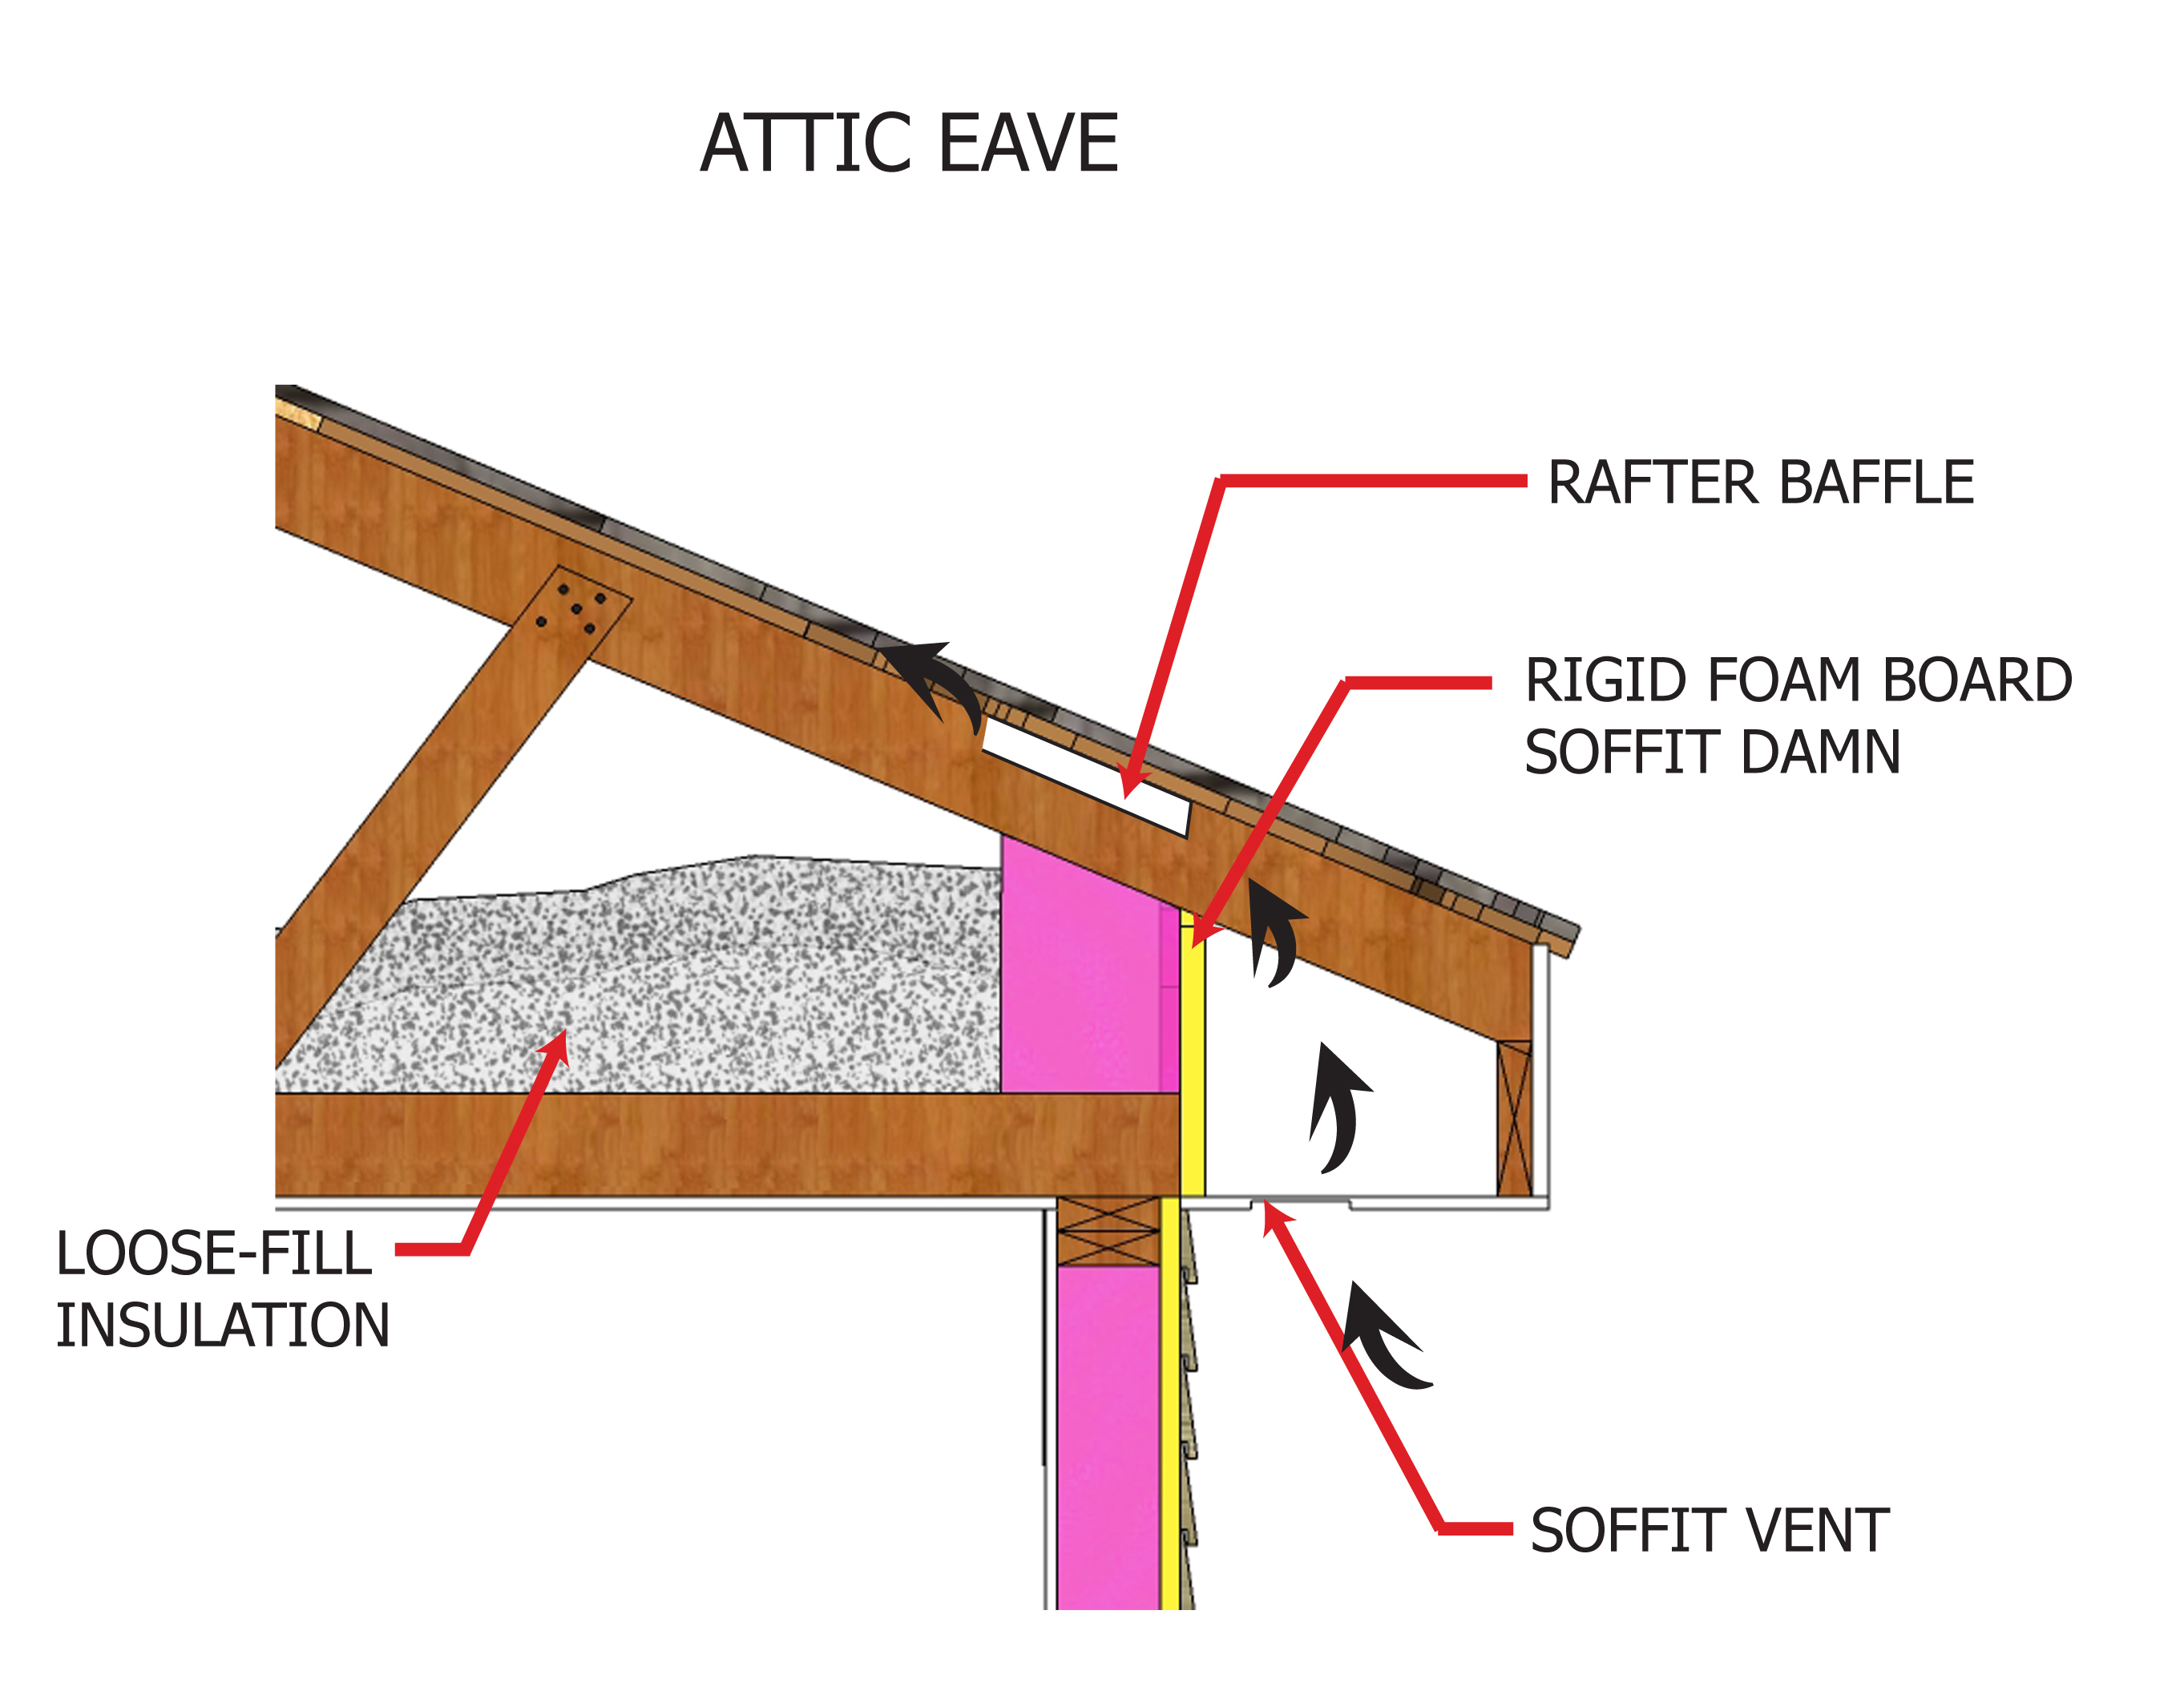 Attic Eave Loose Fill Insulation Inspection Gallery